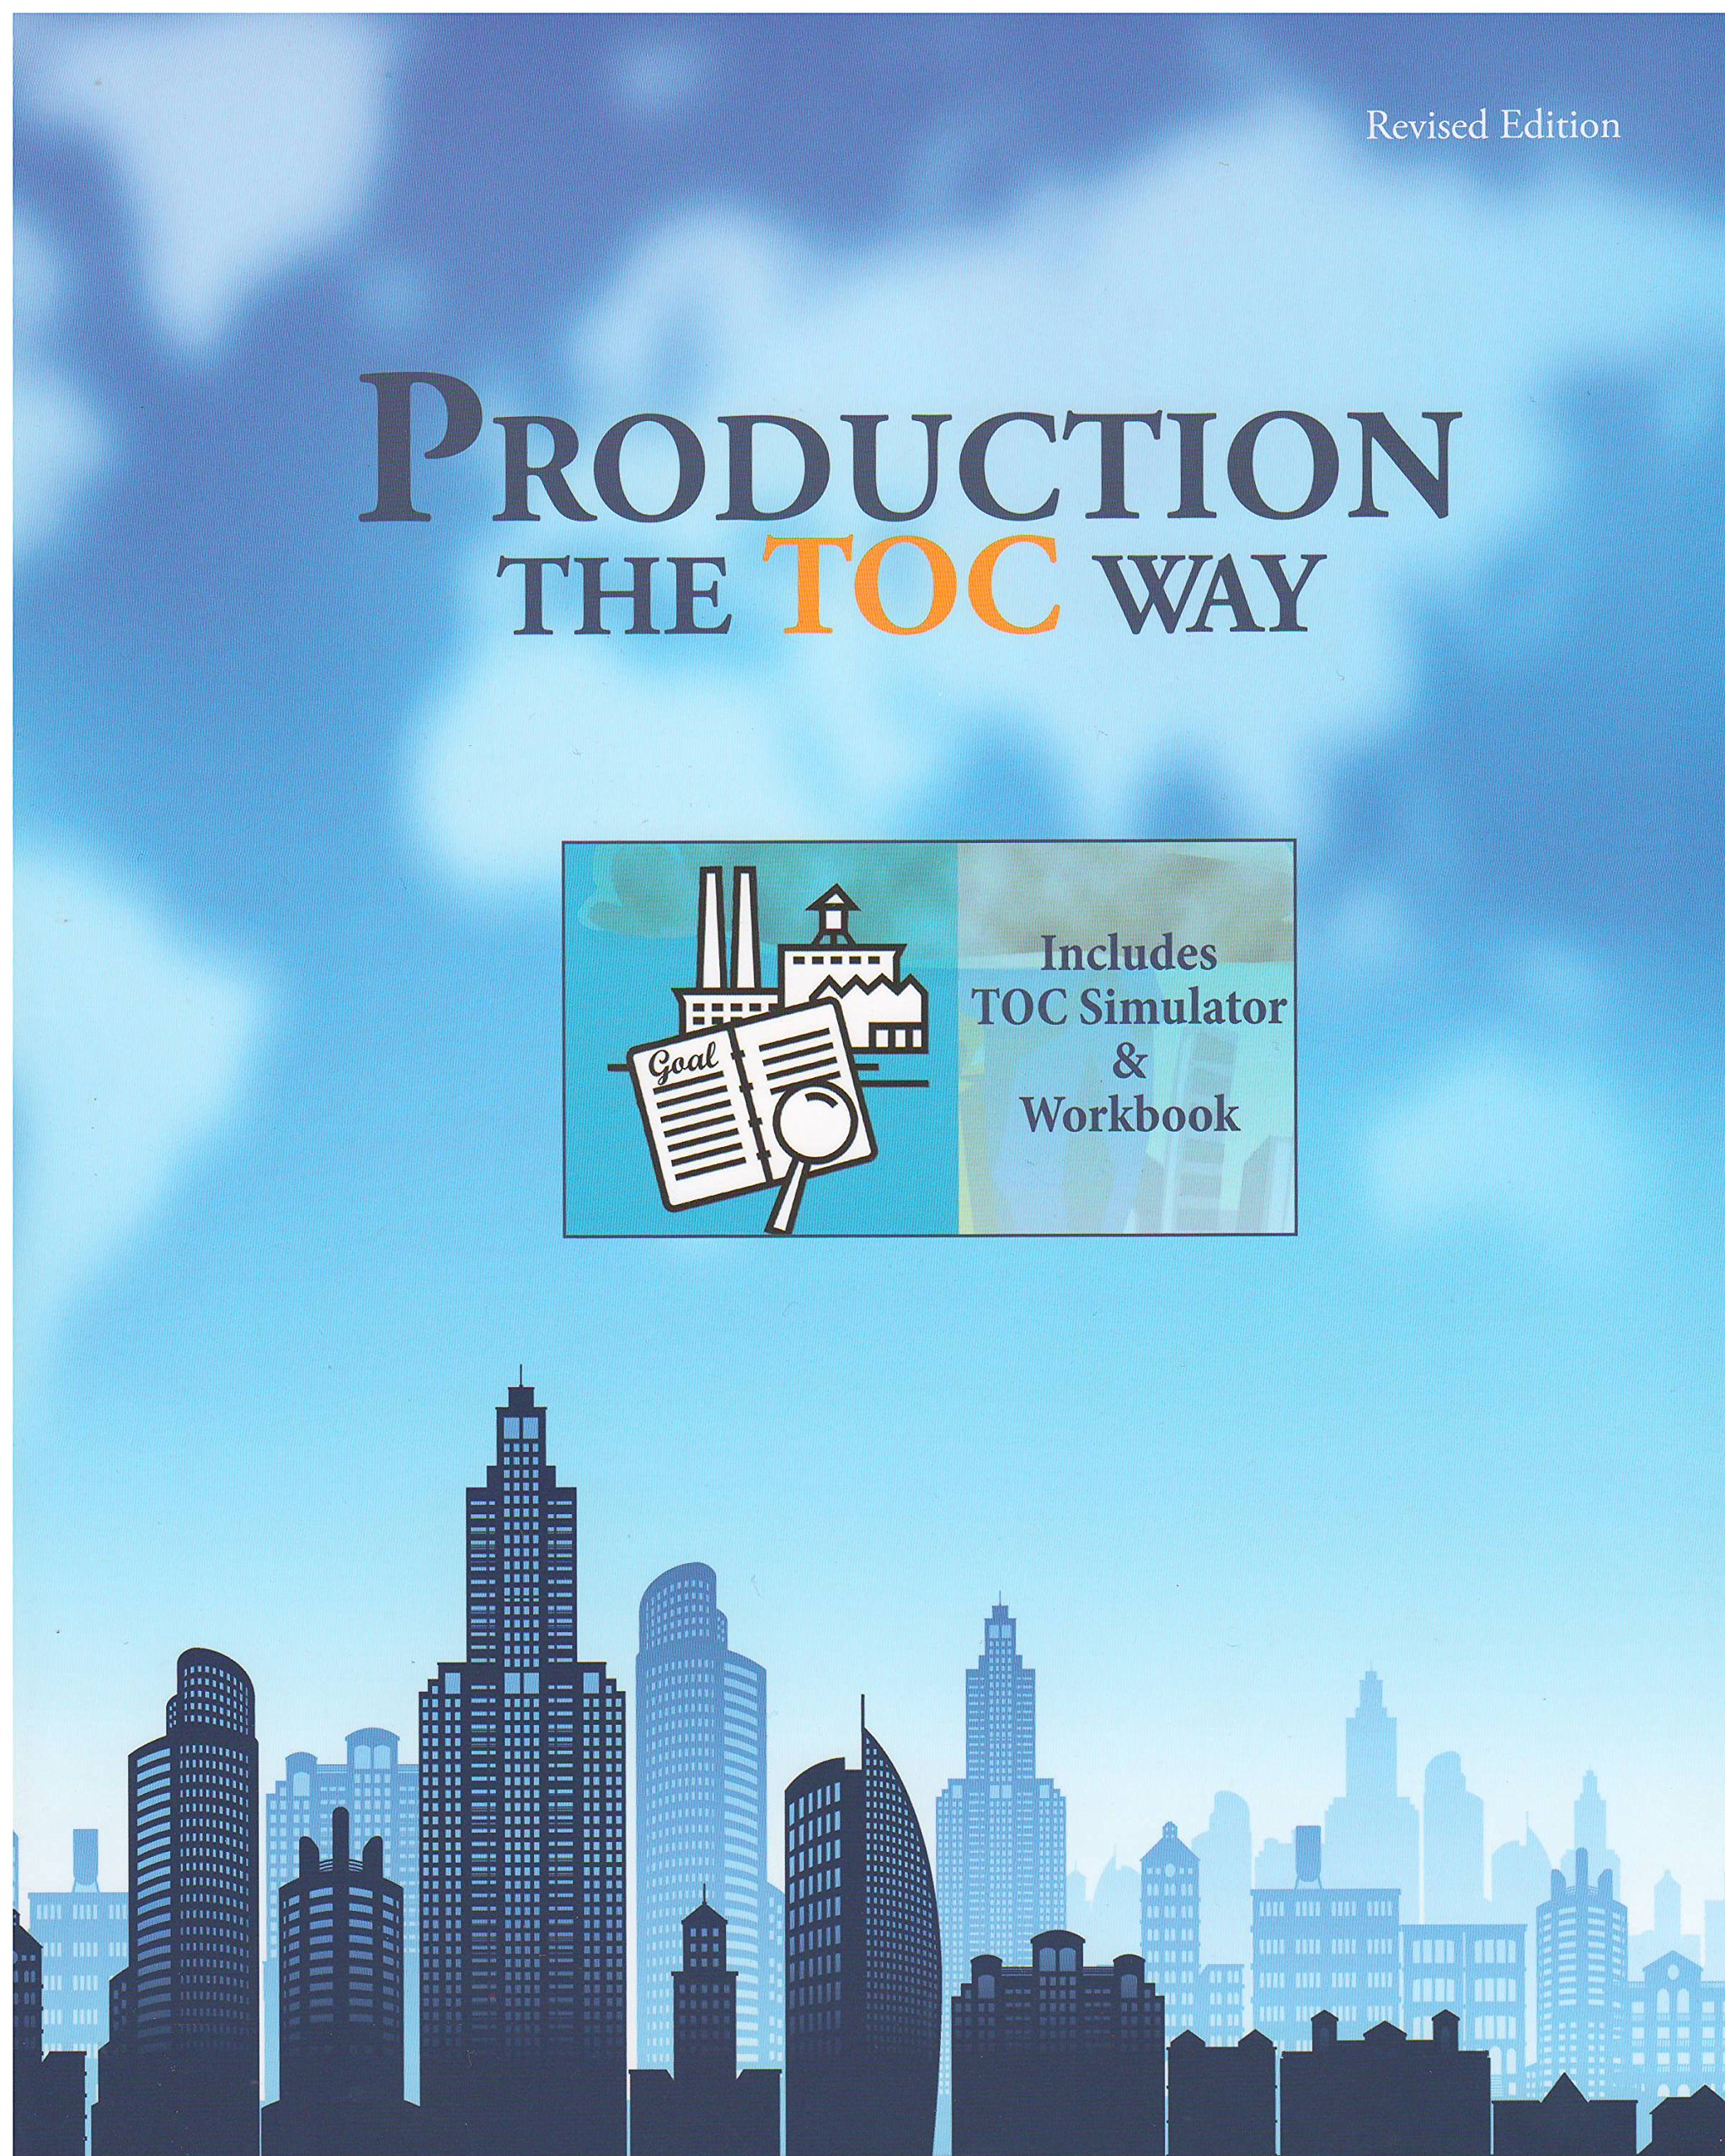 eliyahu m goldratt books related products dvd cd apparel production the toc way simulator